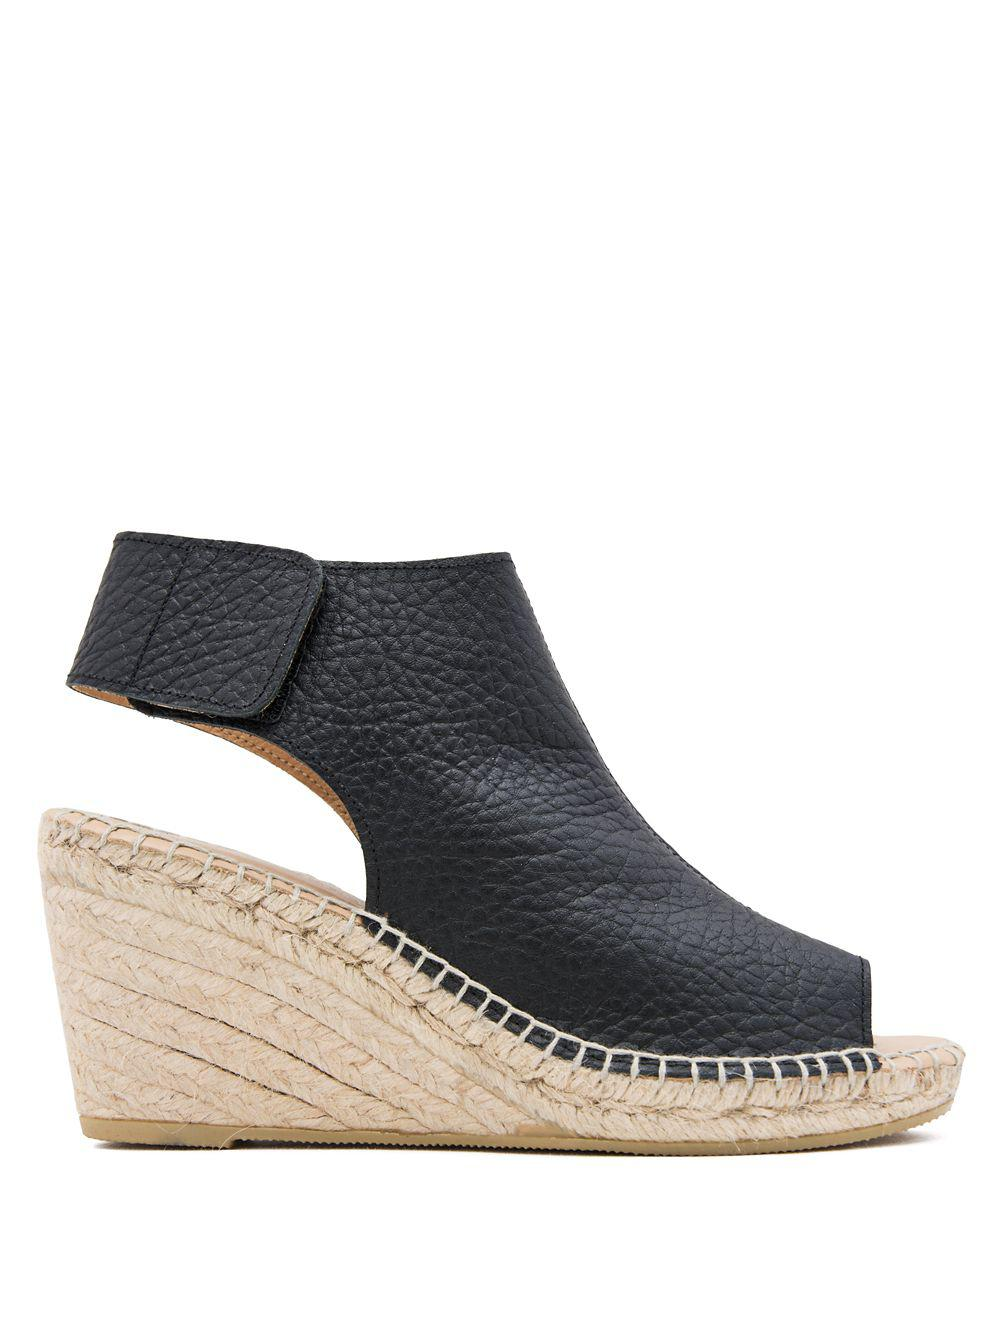 ee7cf7afdf2 Women's Black Florence Leather And Jute Wedge Espadrilles